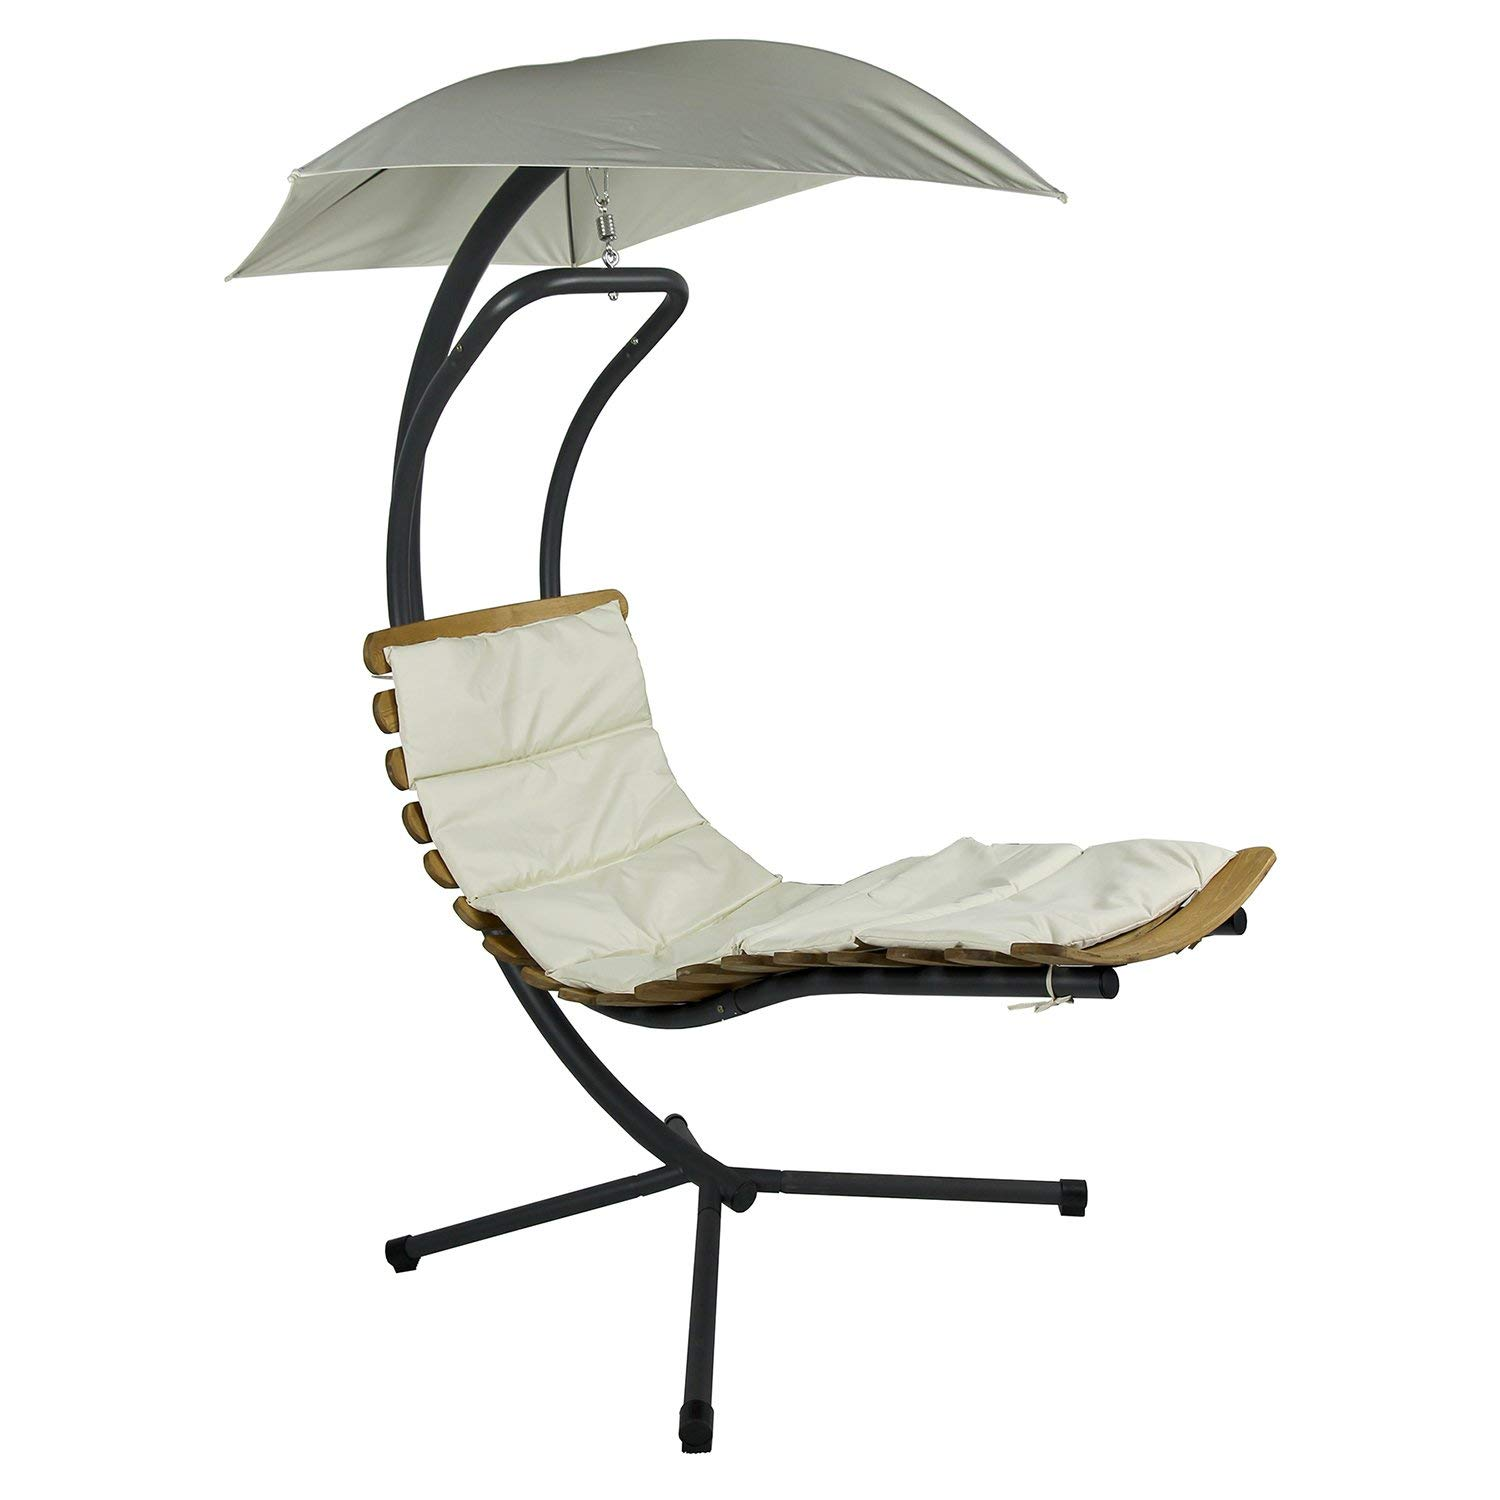 wooden small lounger with canopy curved